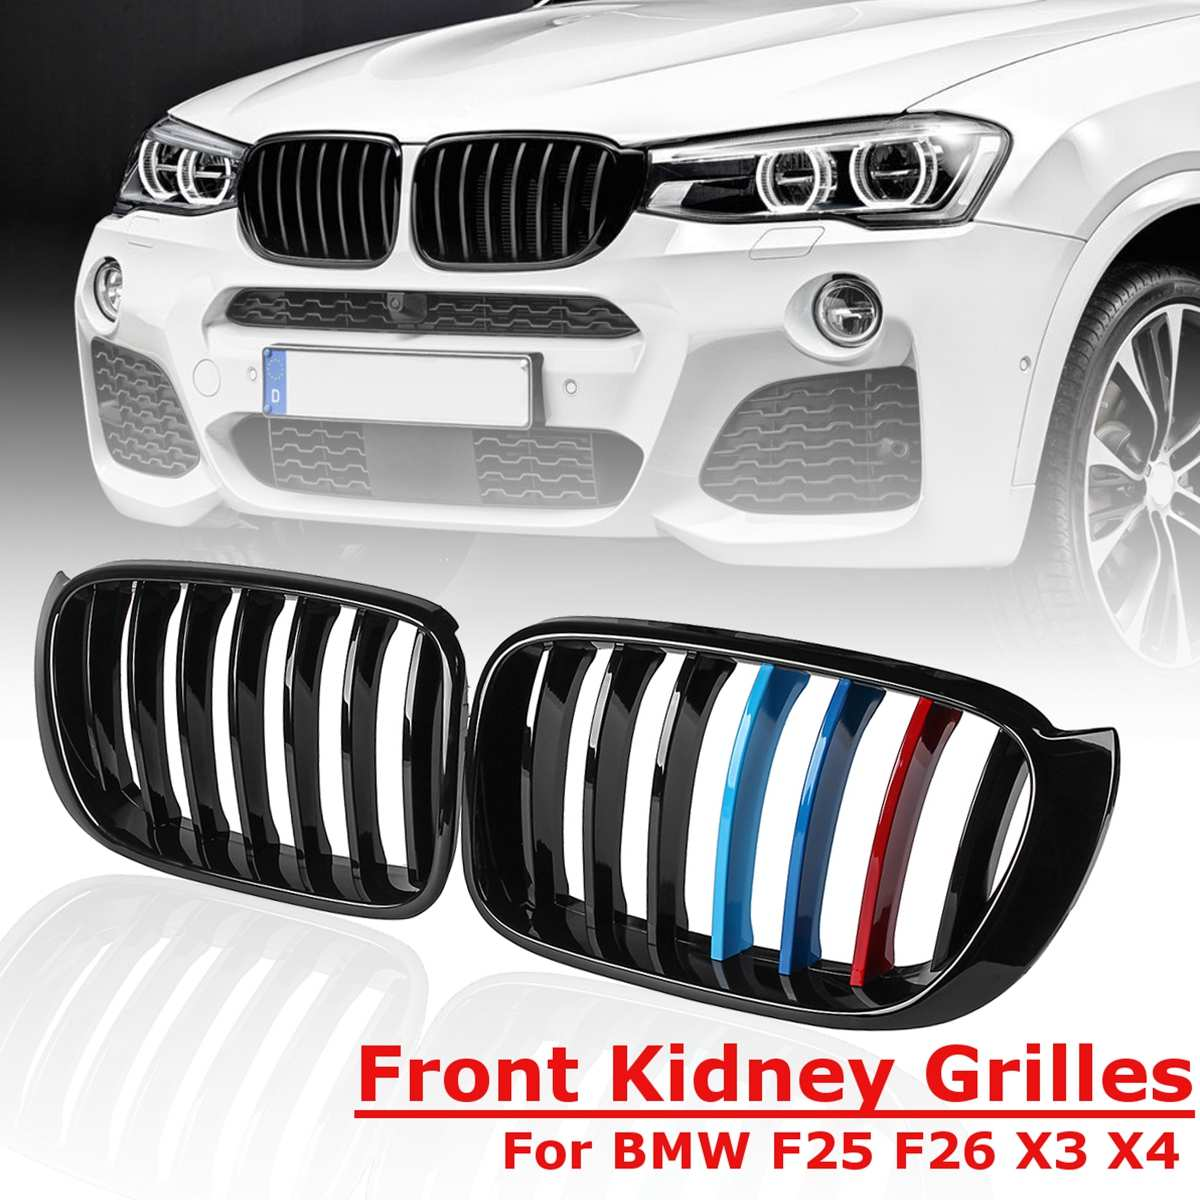 New Pair Front Kidney Grill Grille For BMW X3 F25 X4 F26 2014 2015 2016 2017 Gloss Matt Black M color 1 slat line Car StylingNew Pair Front Kidney Grill Grille For BMW X3 F25 X4 F26 2014 2015 2016 2017 Gloss Matt Black M color 1 slat line Car Styling